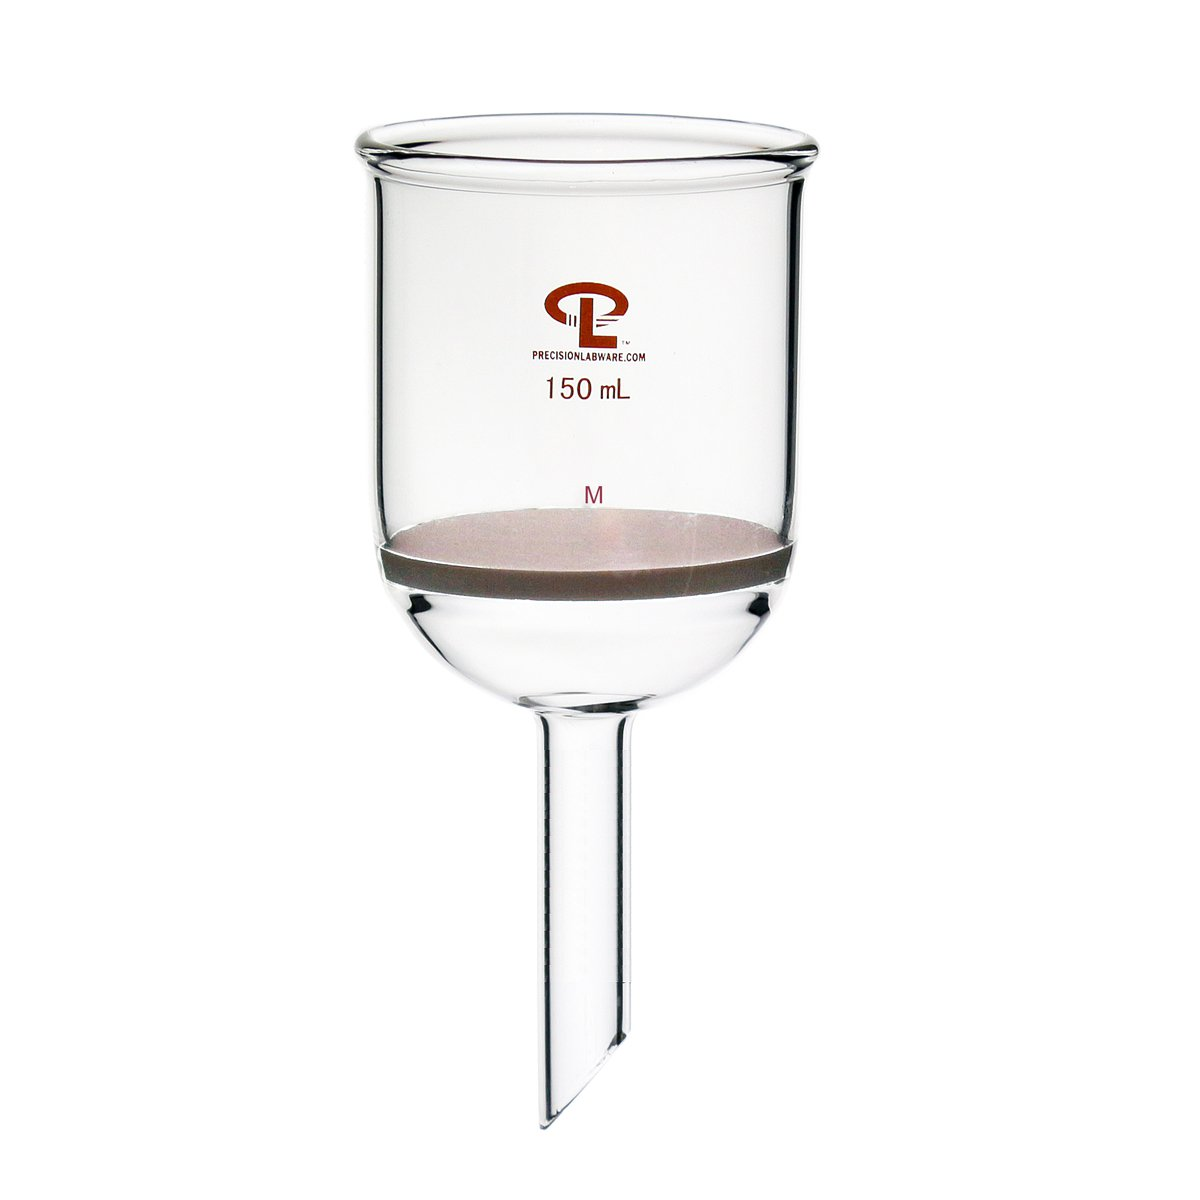 Precision 150 mL Filter Funnel Max 73% OFF Max 65% OFF Medium Porosity B Disc Fritted